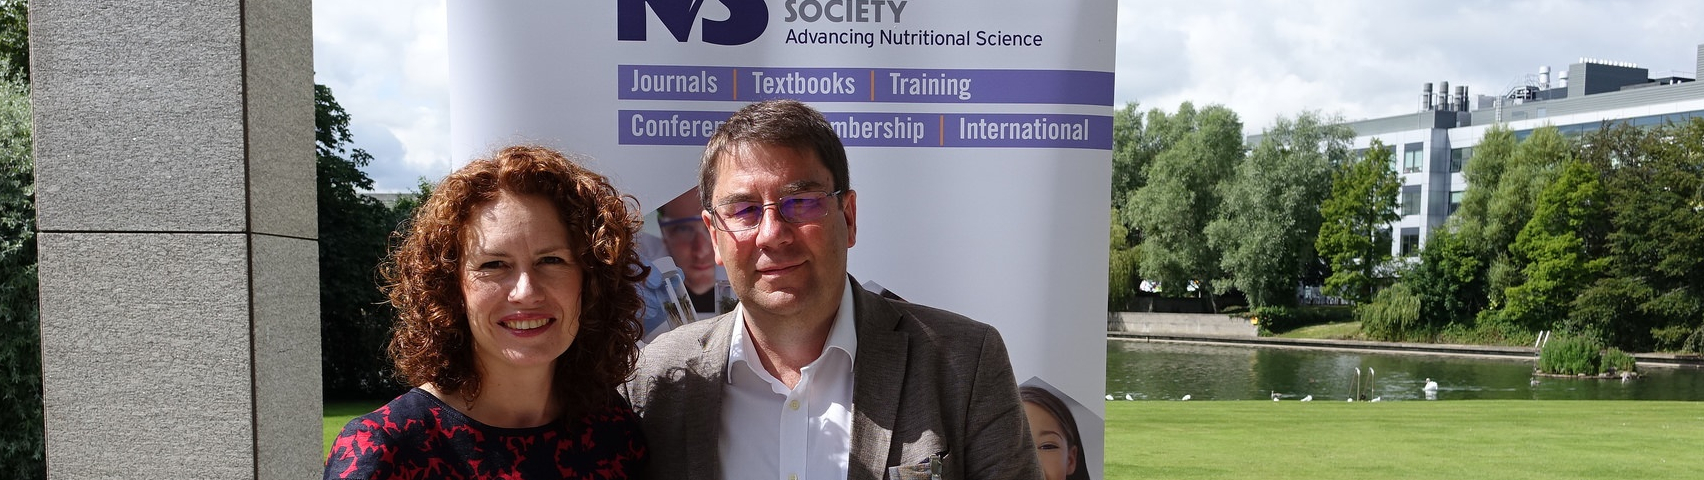 Dr Wendy Hall with Professor Philip Calder